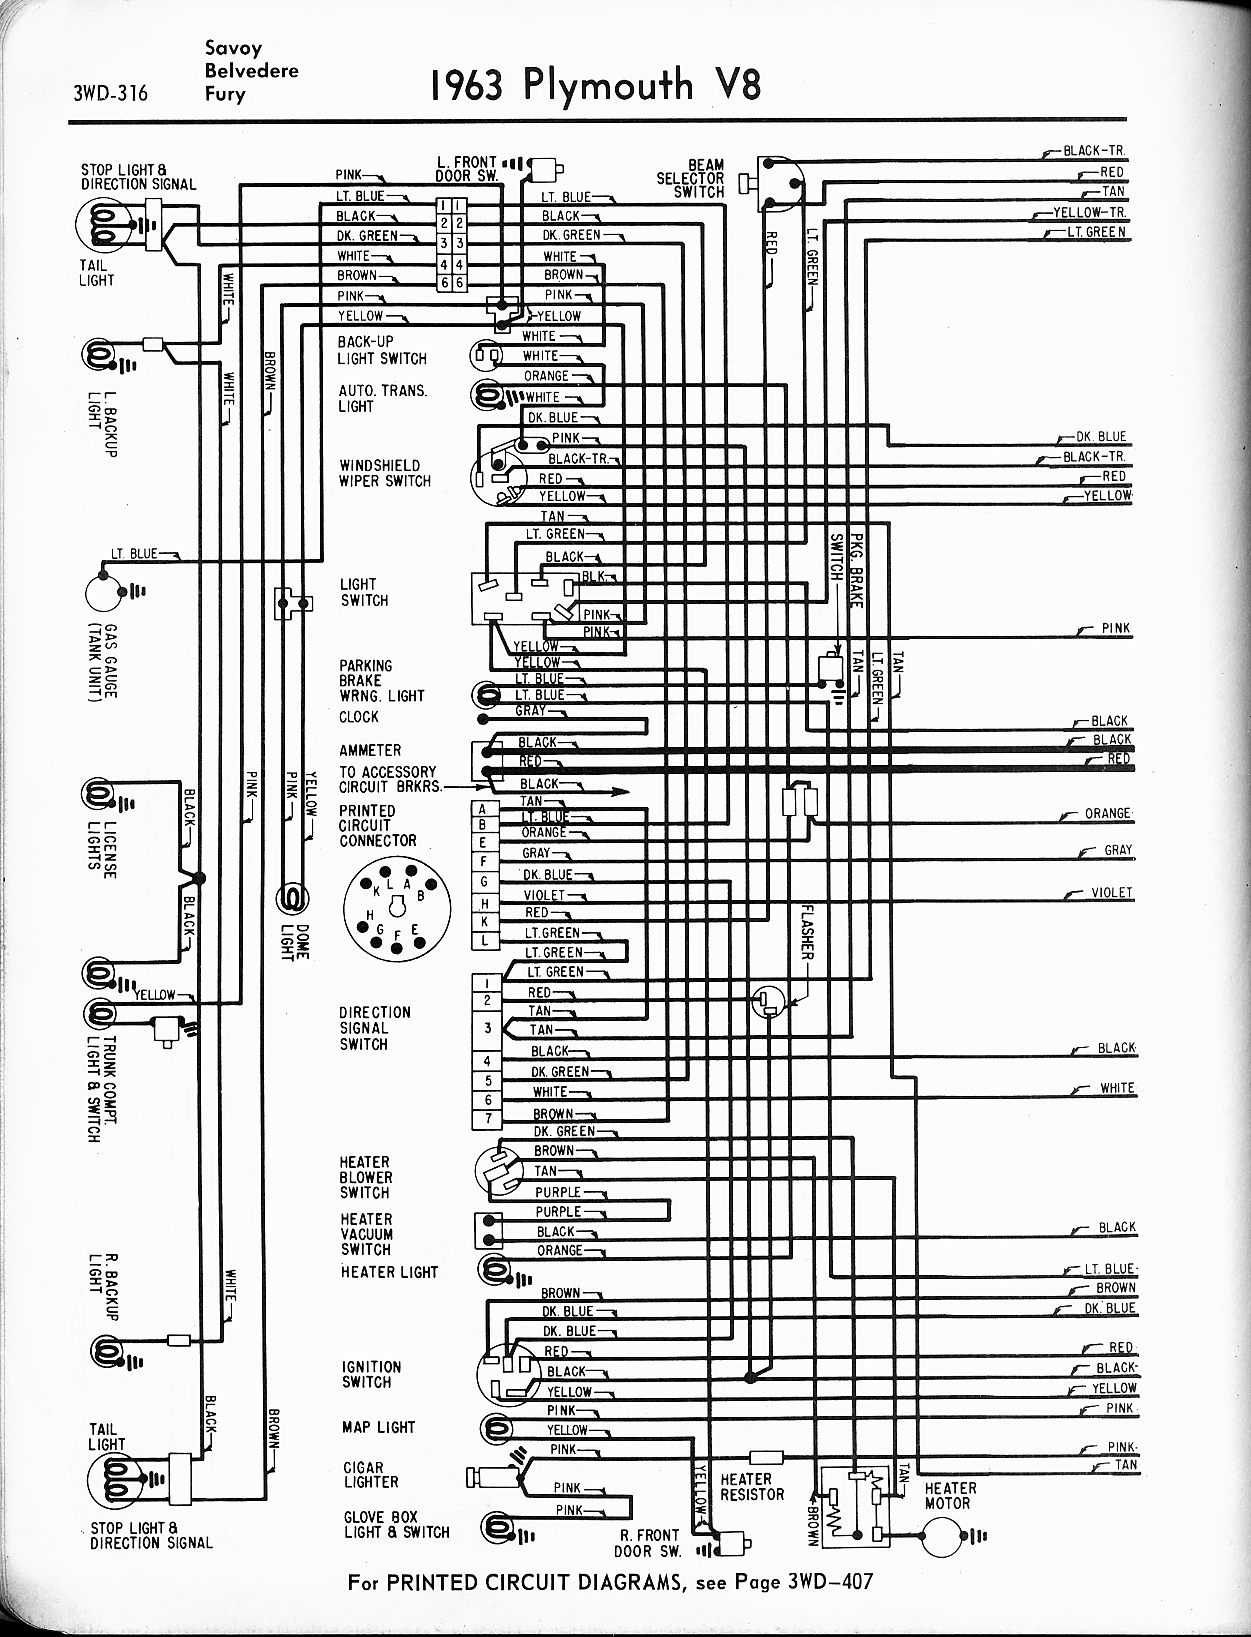 1963 Plymouth Wiring Diagram - Wiring Diagram Img on